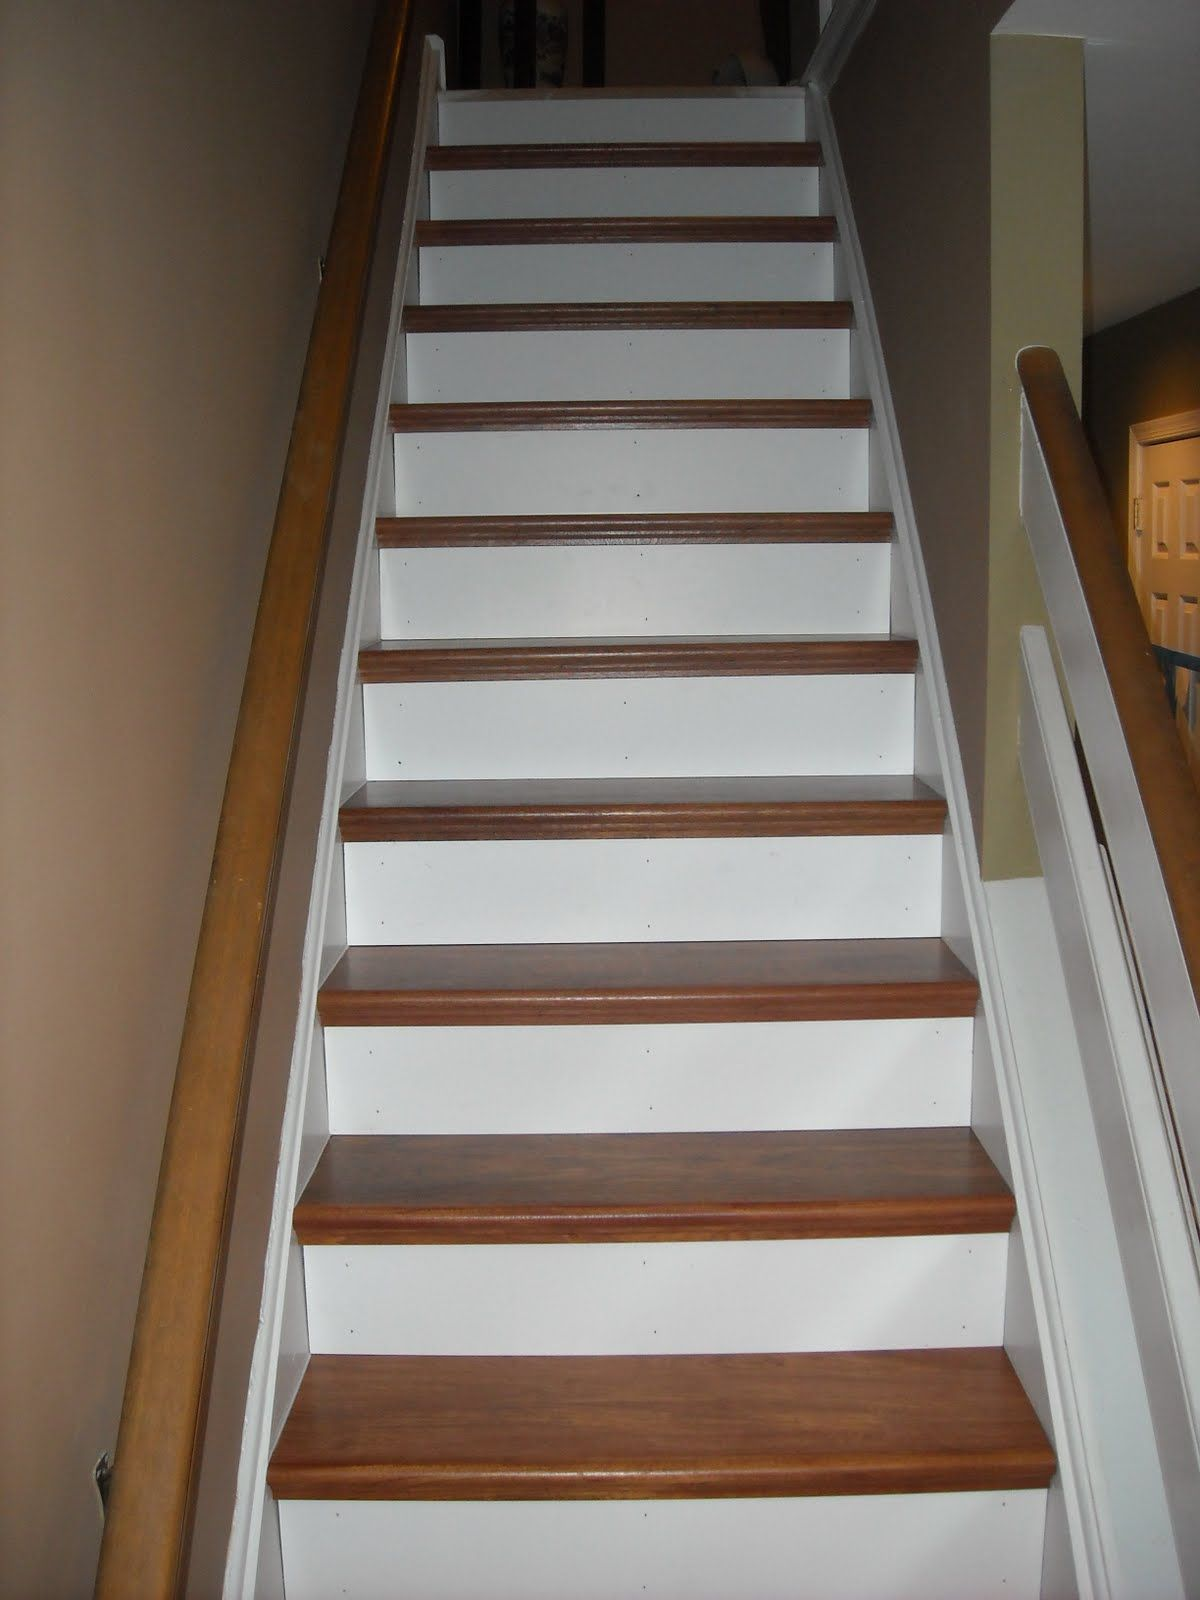 NuStair Stairtreads With Painted Risers By Coppolino Construction Inc.| DIY  Staircase Remodel | Stair Covers | Stair Caps | Stair Facing | Stair  Refacing ...